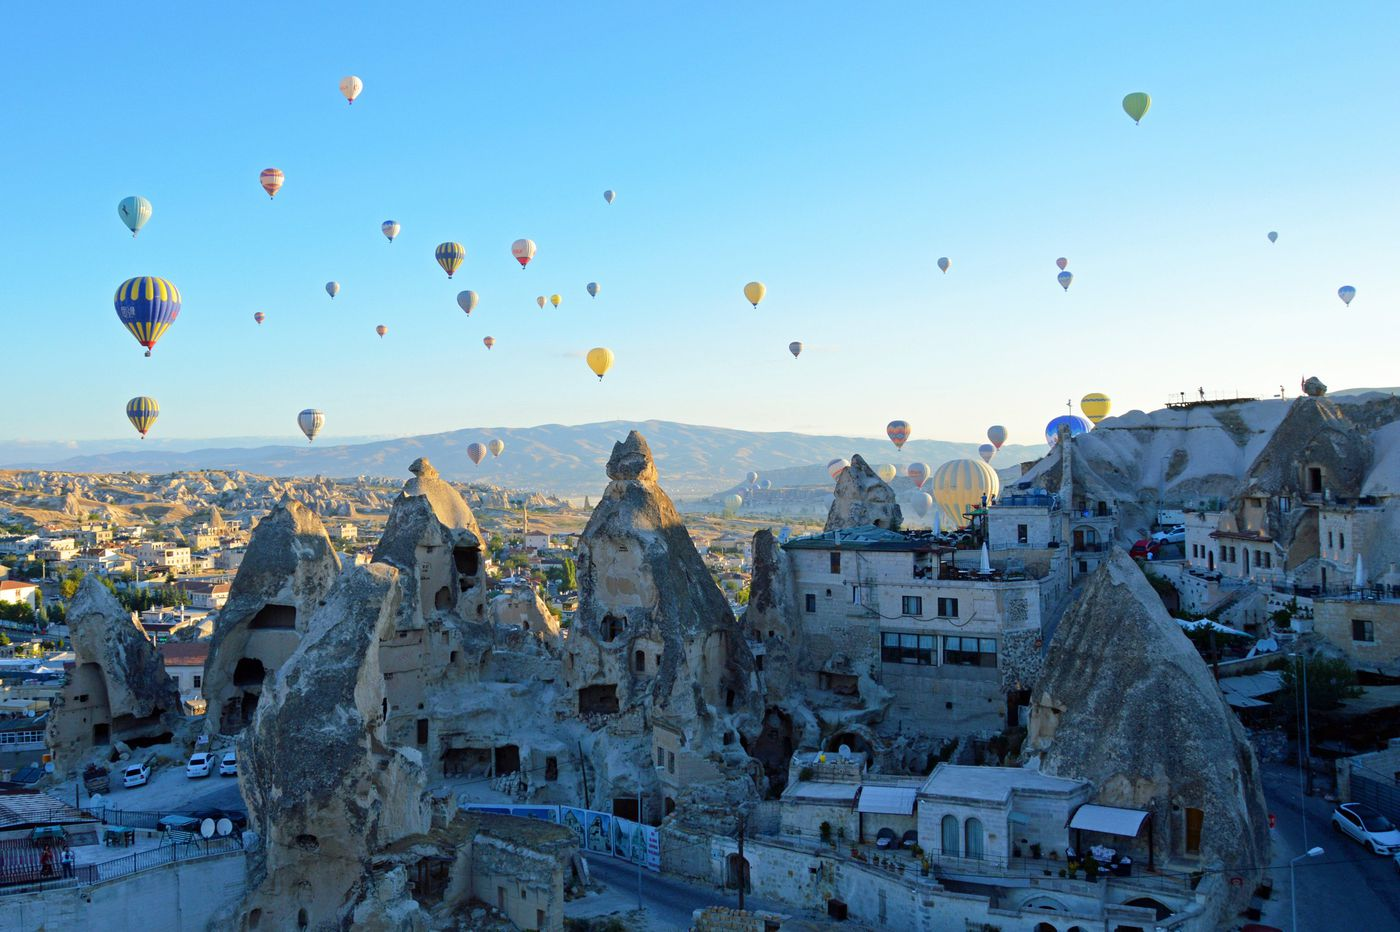 In central Turkey's Cappadocia, a landscape of fairy chimneys and cave dwellings